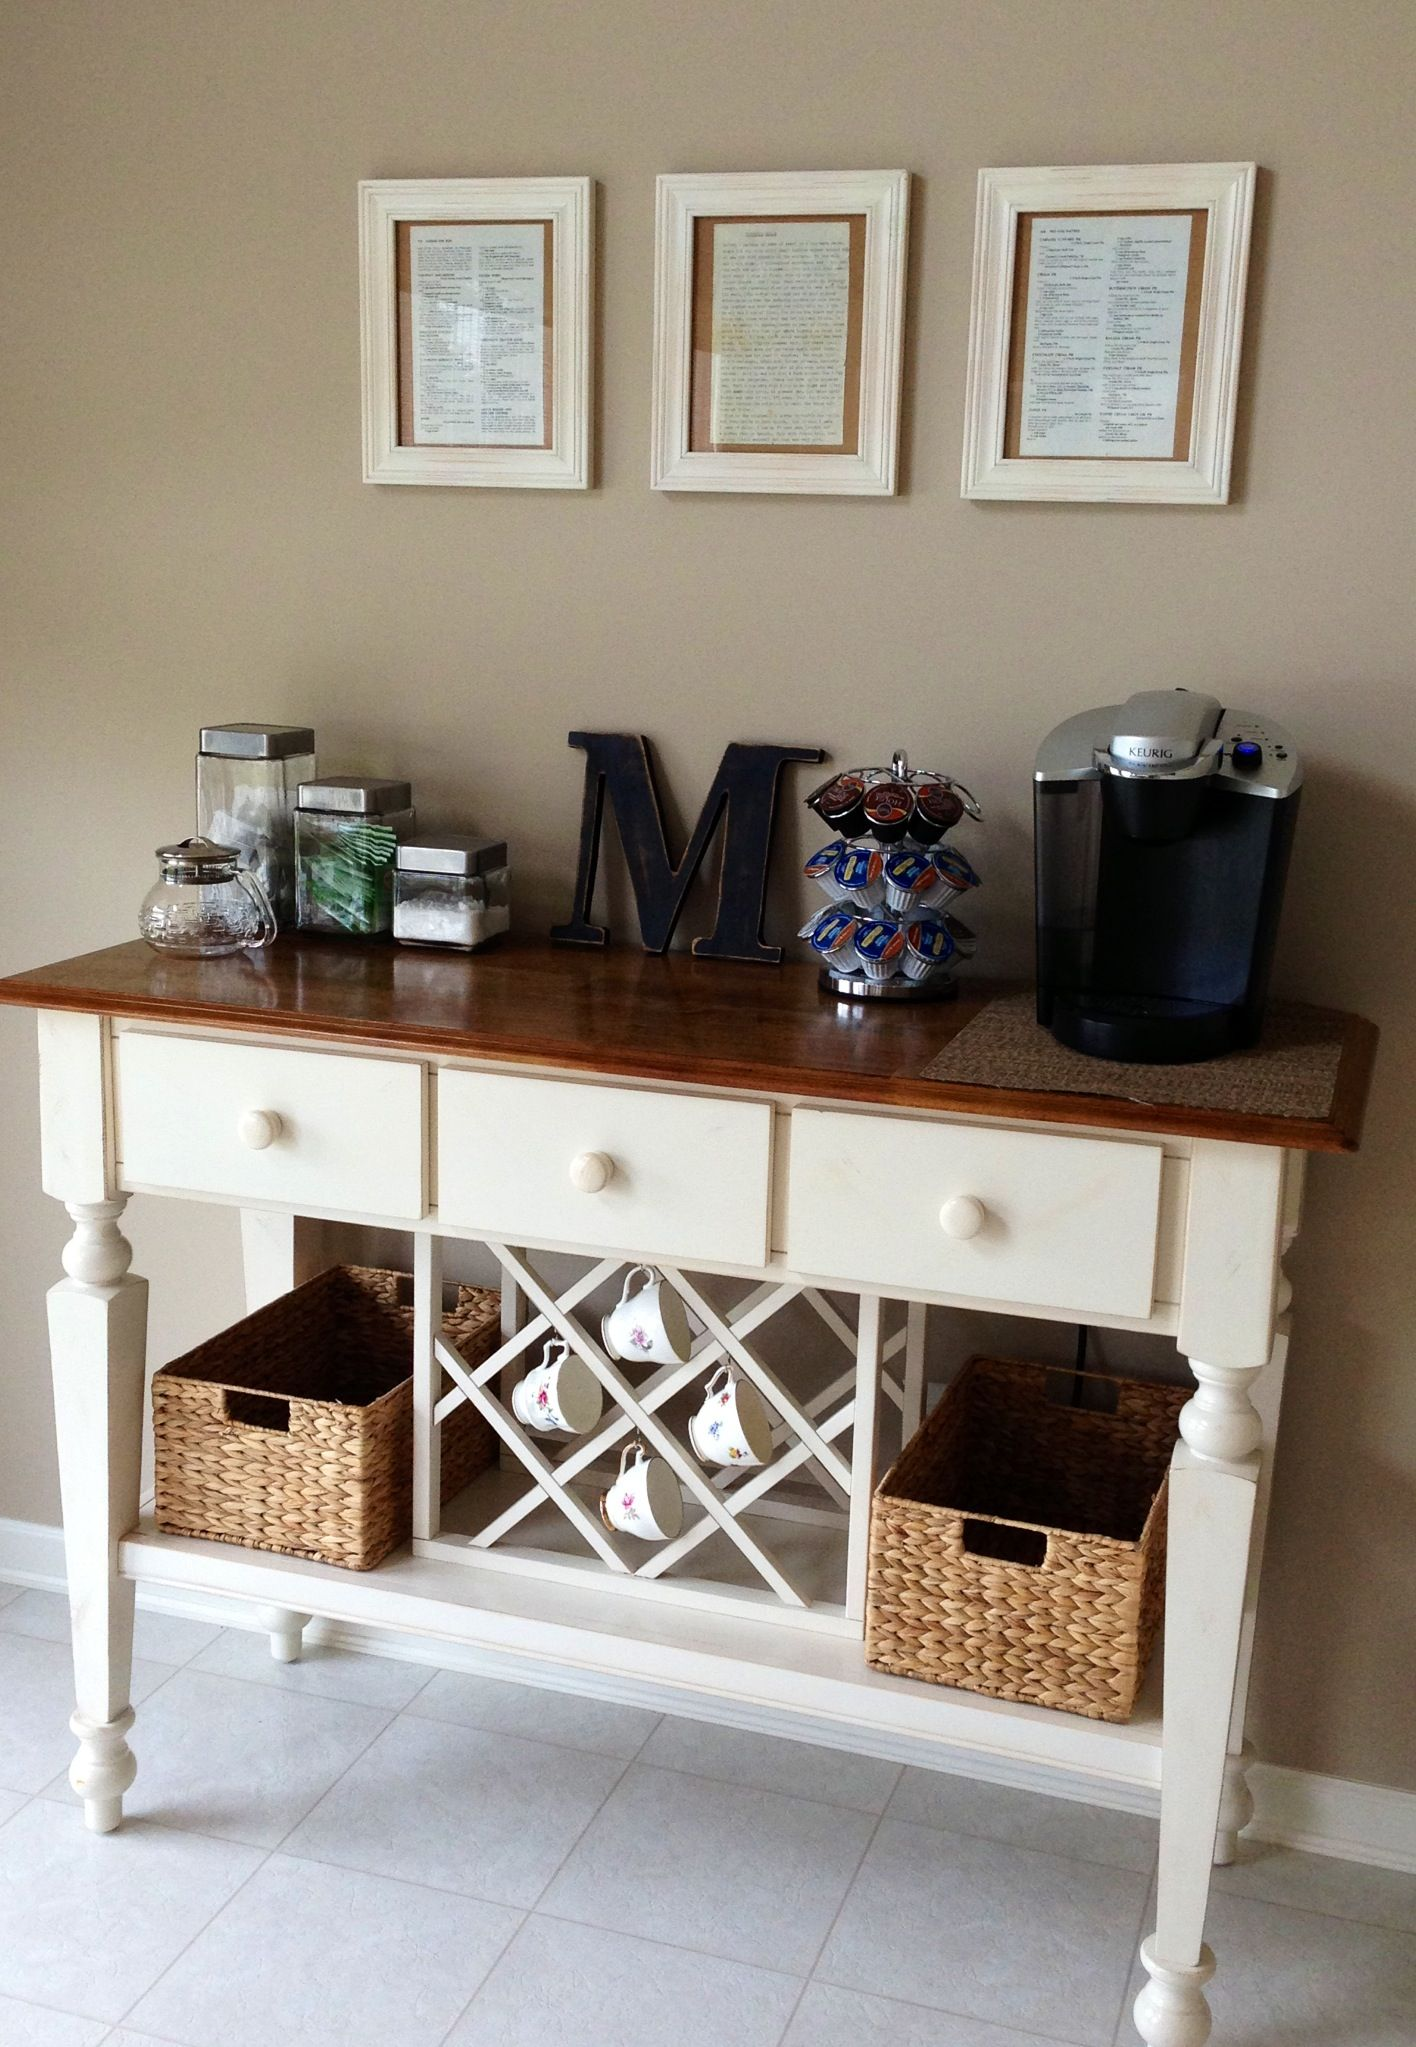 #Coffeebar We will do this soon. We both love it and have ...